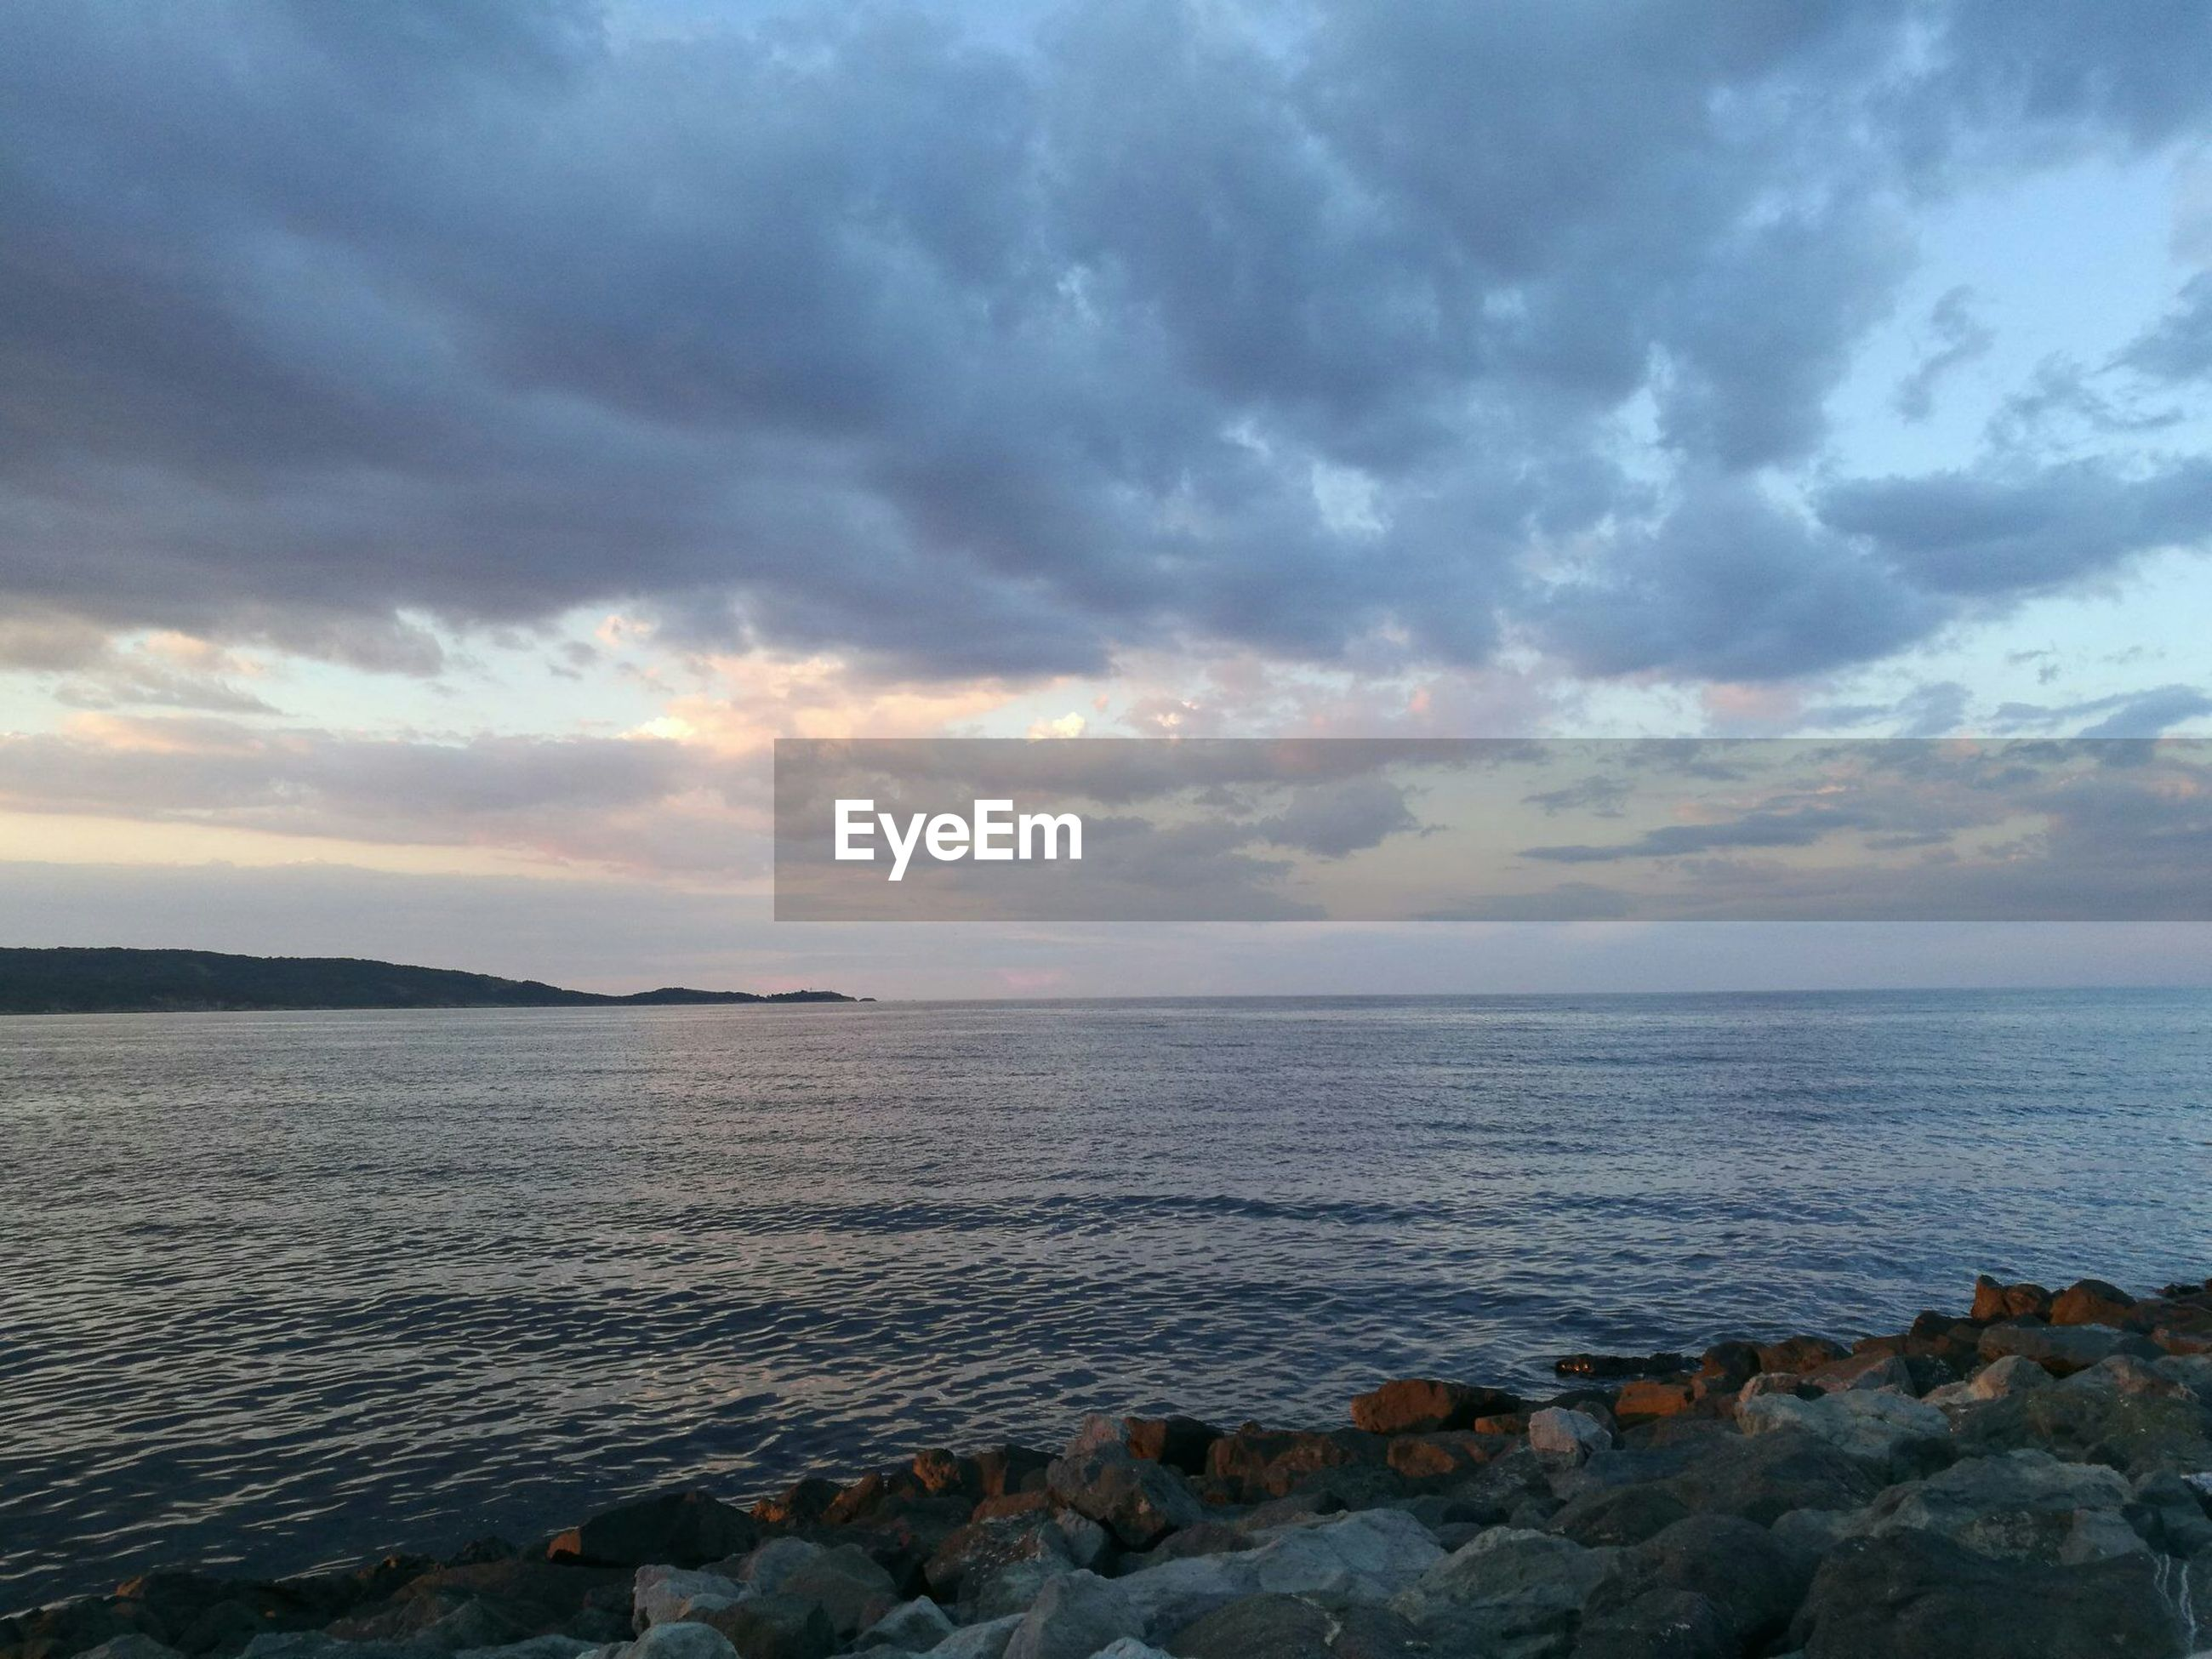 sea, beach, sunset, scenics, horizon over water, cloud - sky, beauty in nature, sky, nature, tranquil scene, outdoors, tranquility, water, no people, day